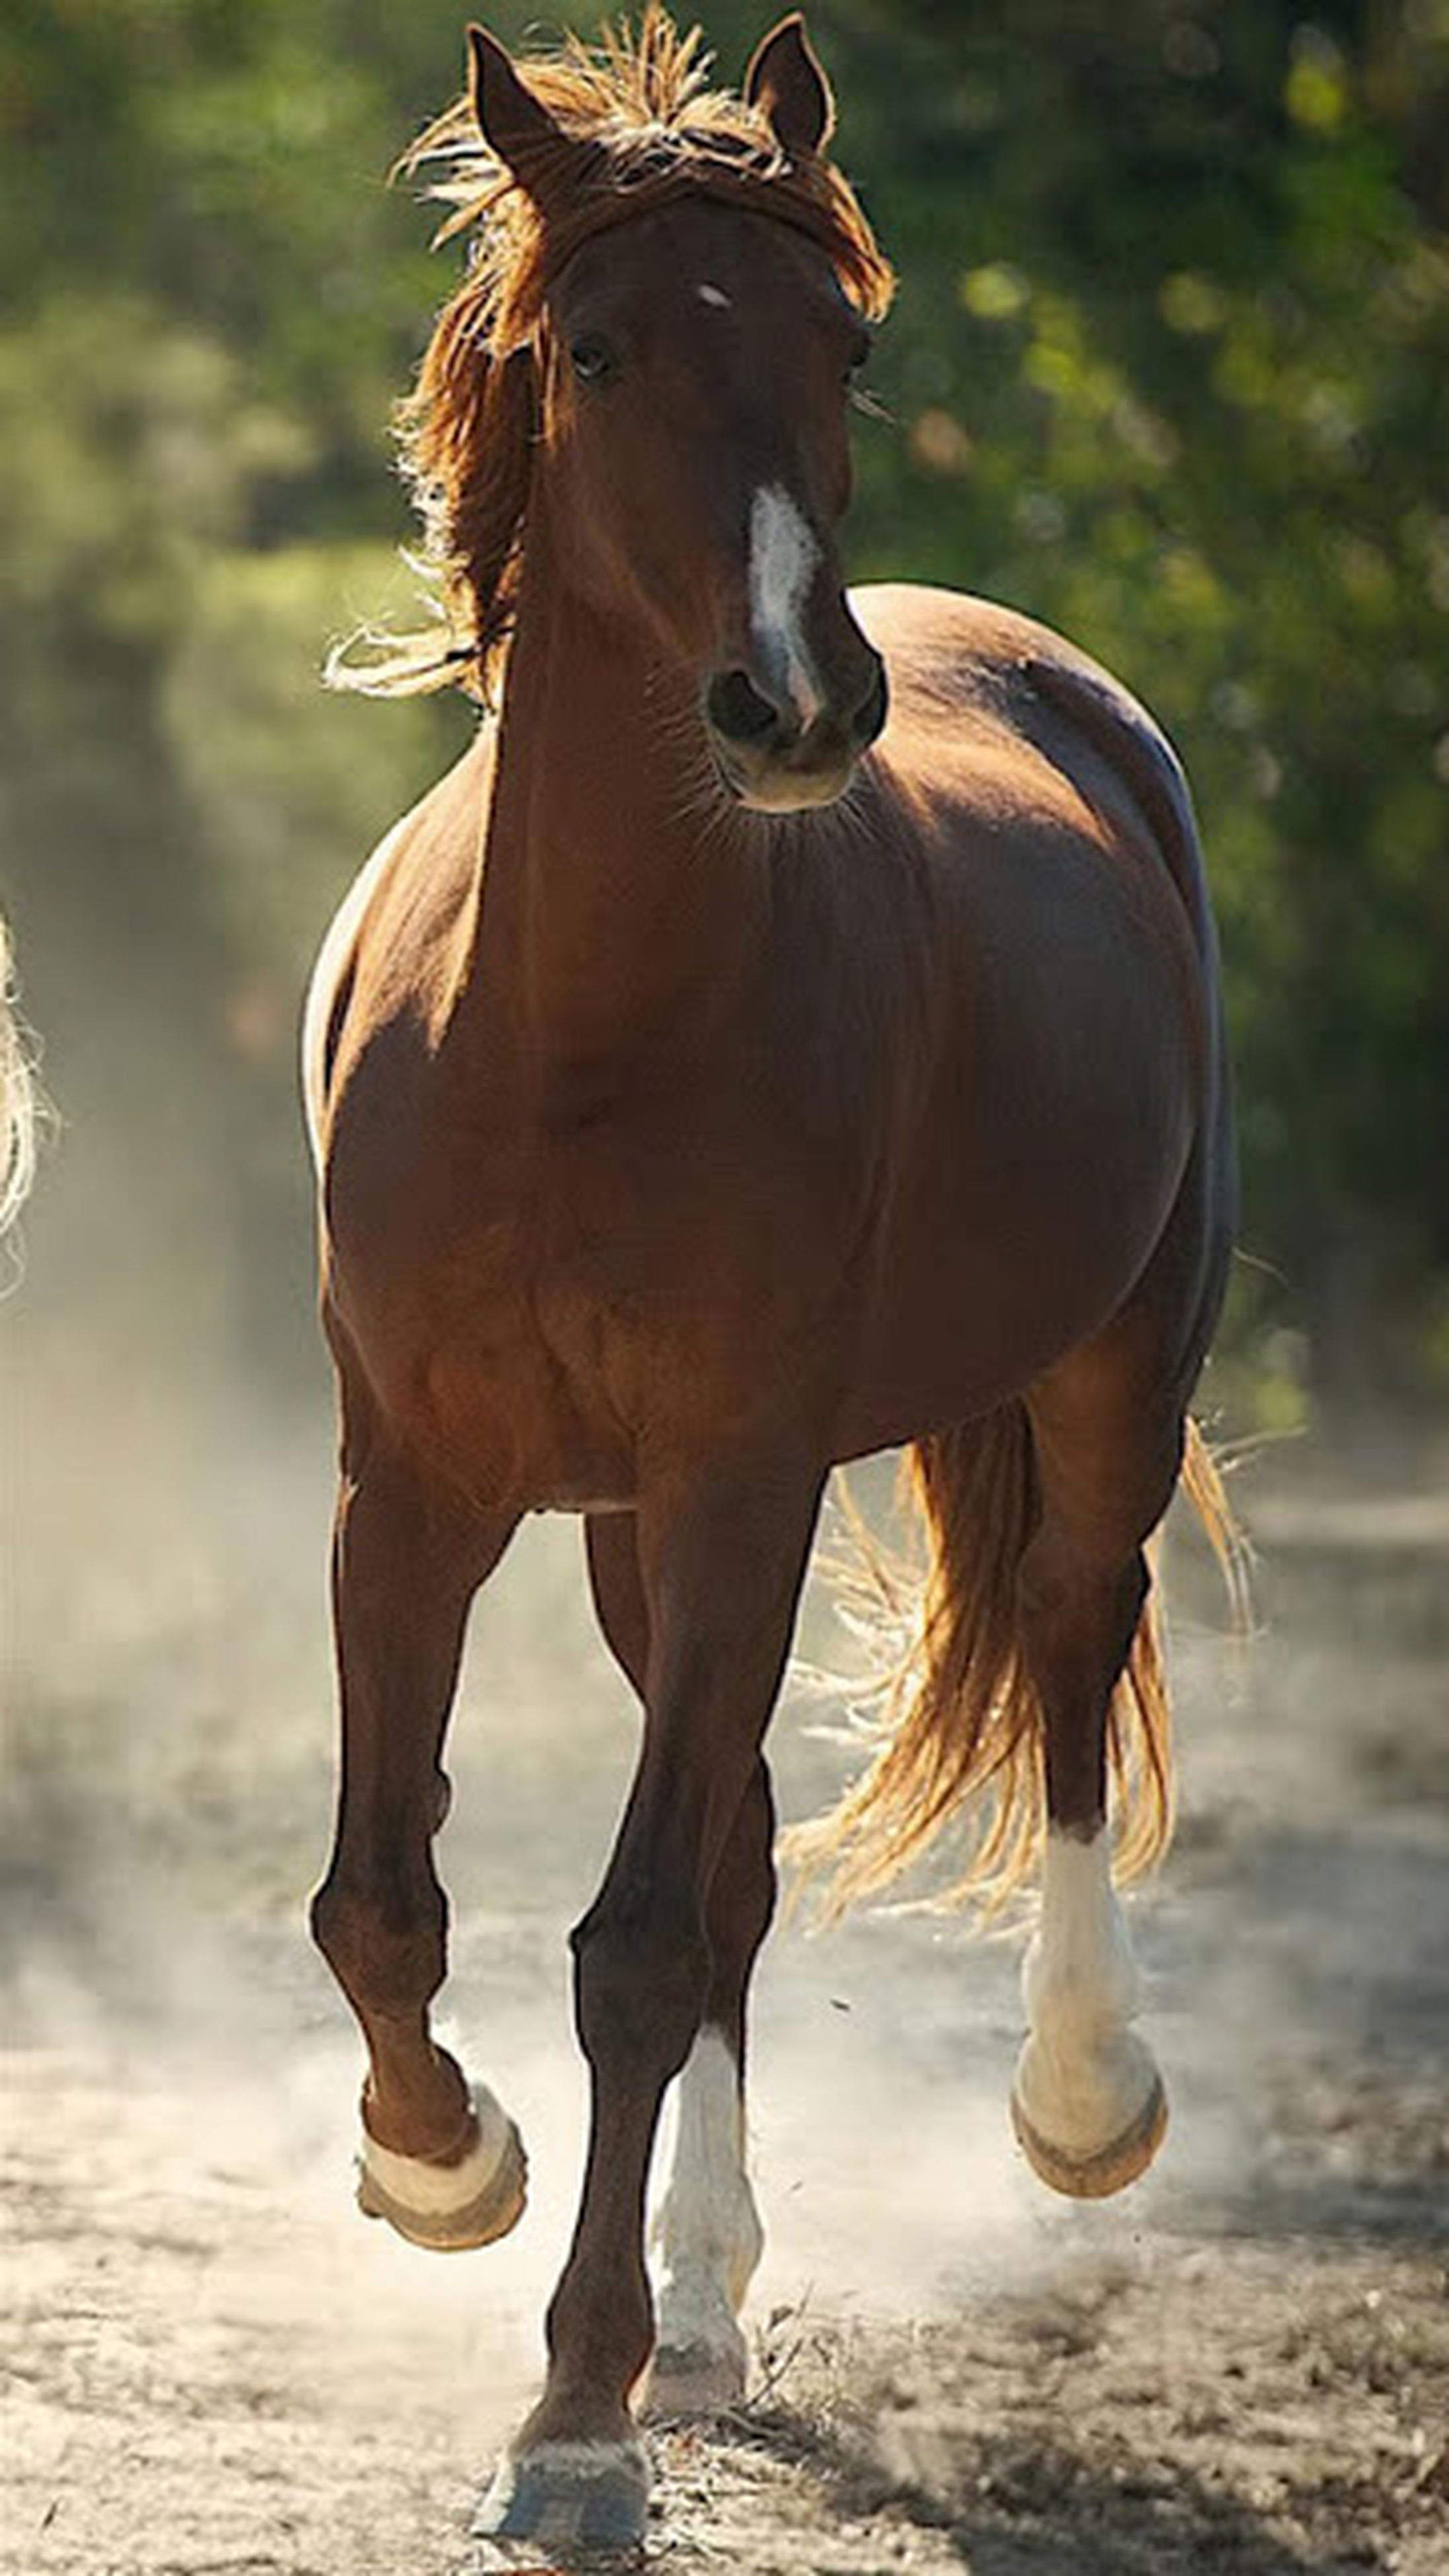 horse, mammal, domestic animals, outdoors, animal, hoofed mammal, nature, one animal, animal themes, day, close-up, no people, water